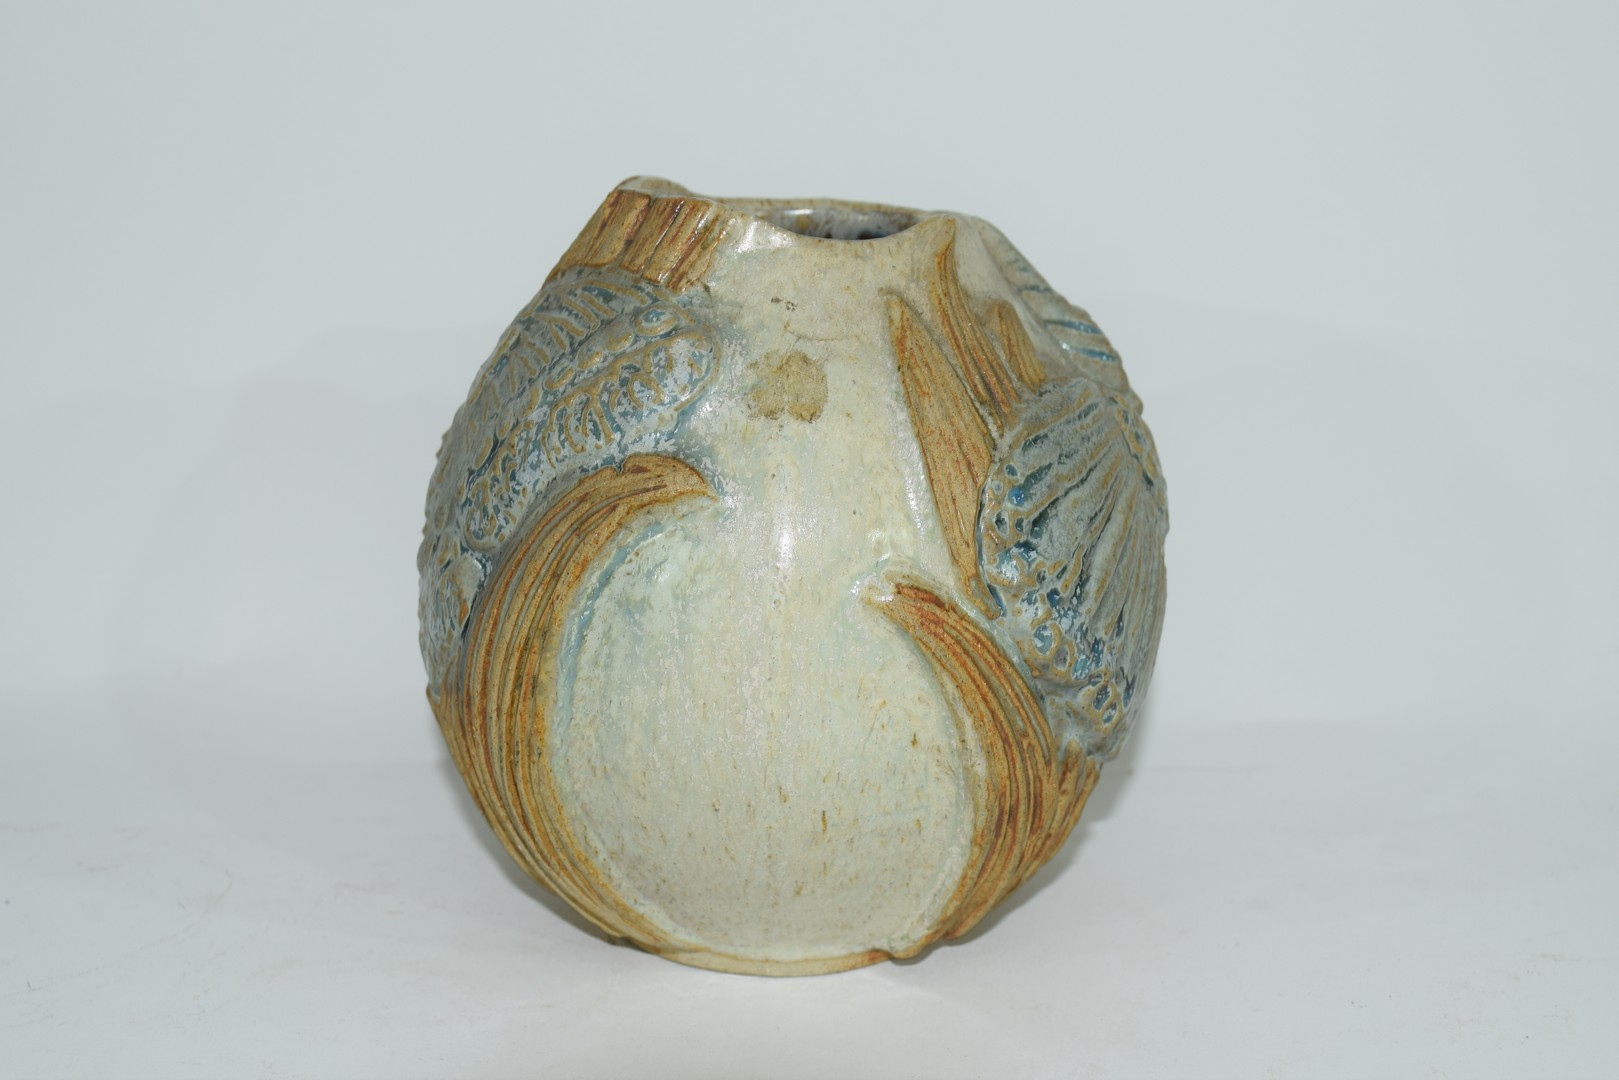 Art Pottery vase with an applied design of dragonflies